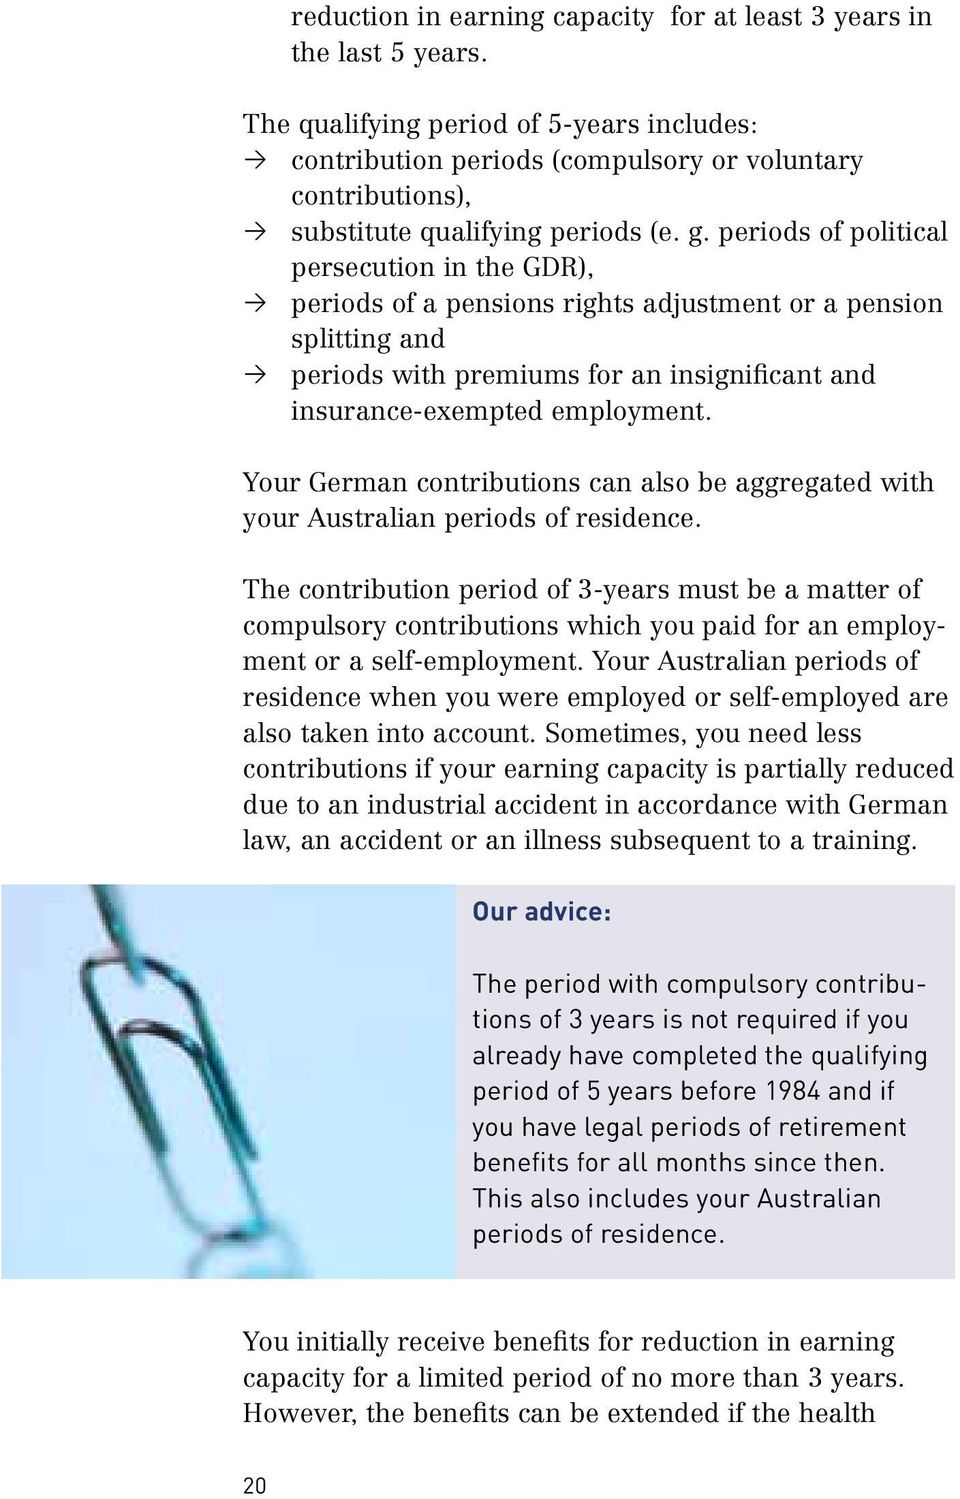 periods of political persecution in the GDR), periods of a pensions rights adjustment or a pension splitting and periods with premiums for an insignificant and insurance-exempted employment.